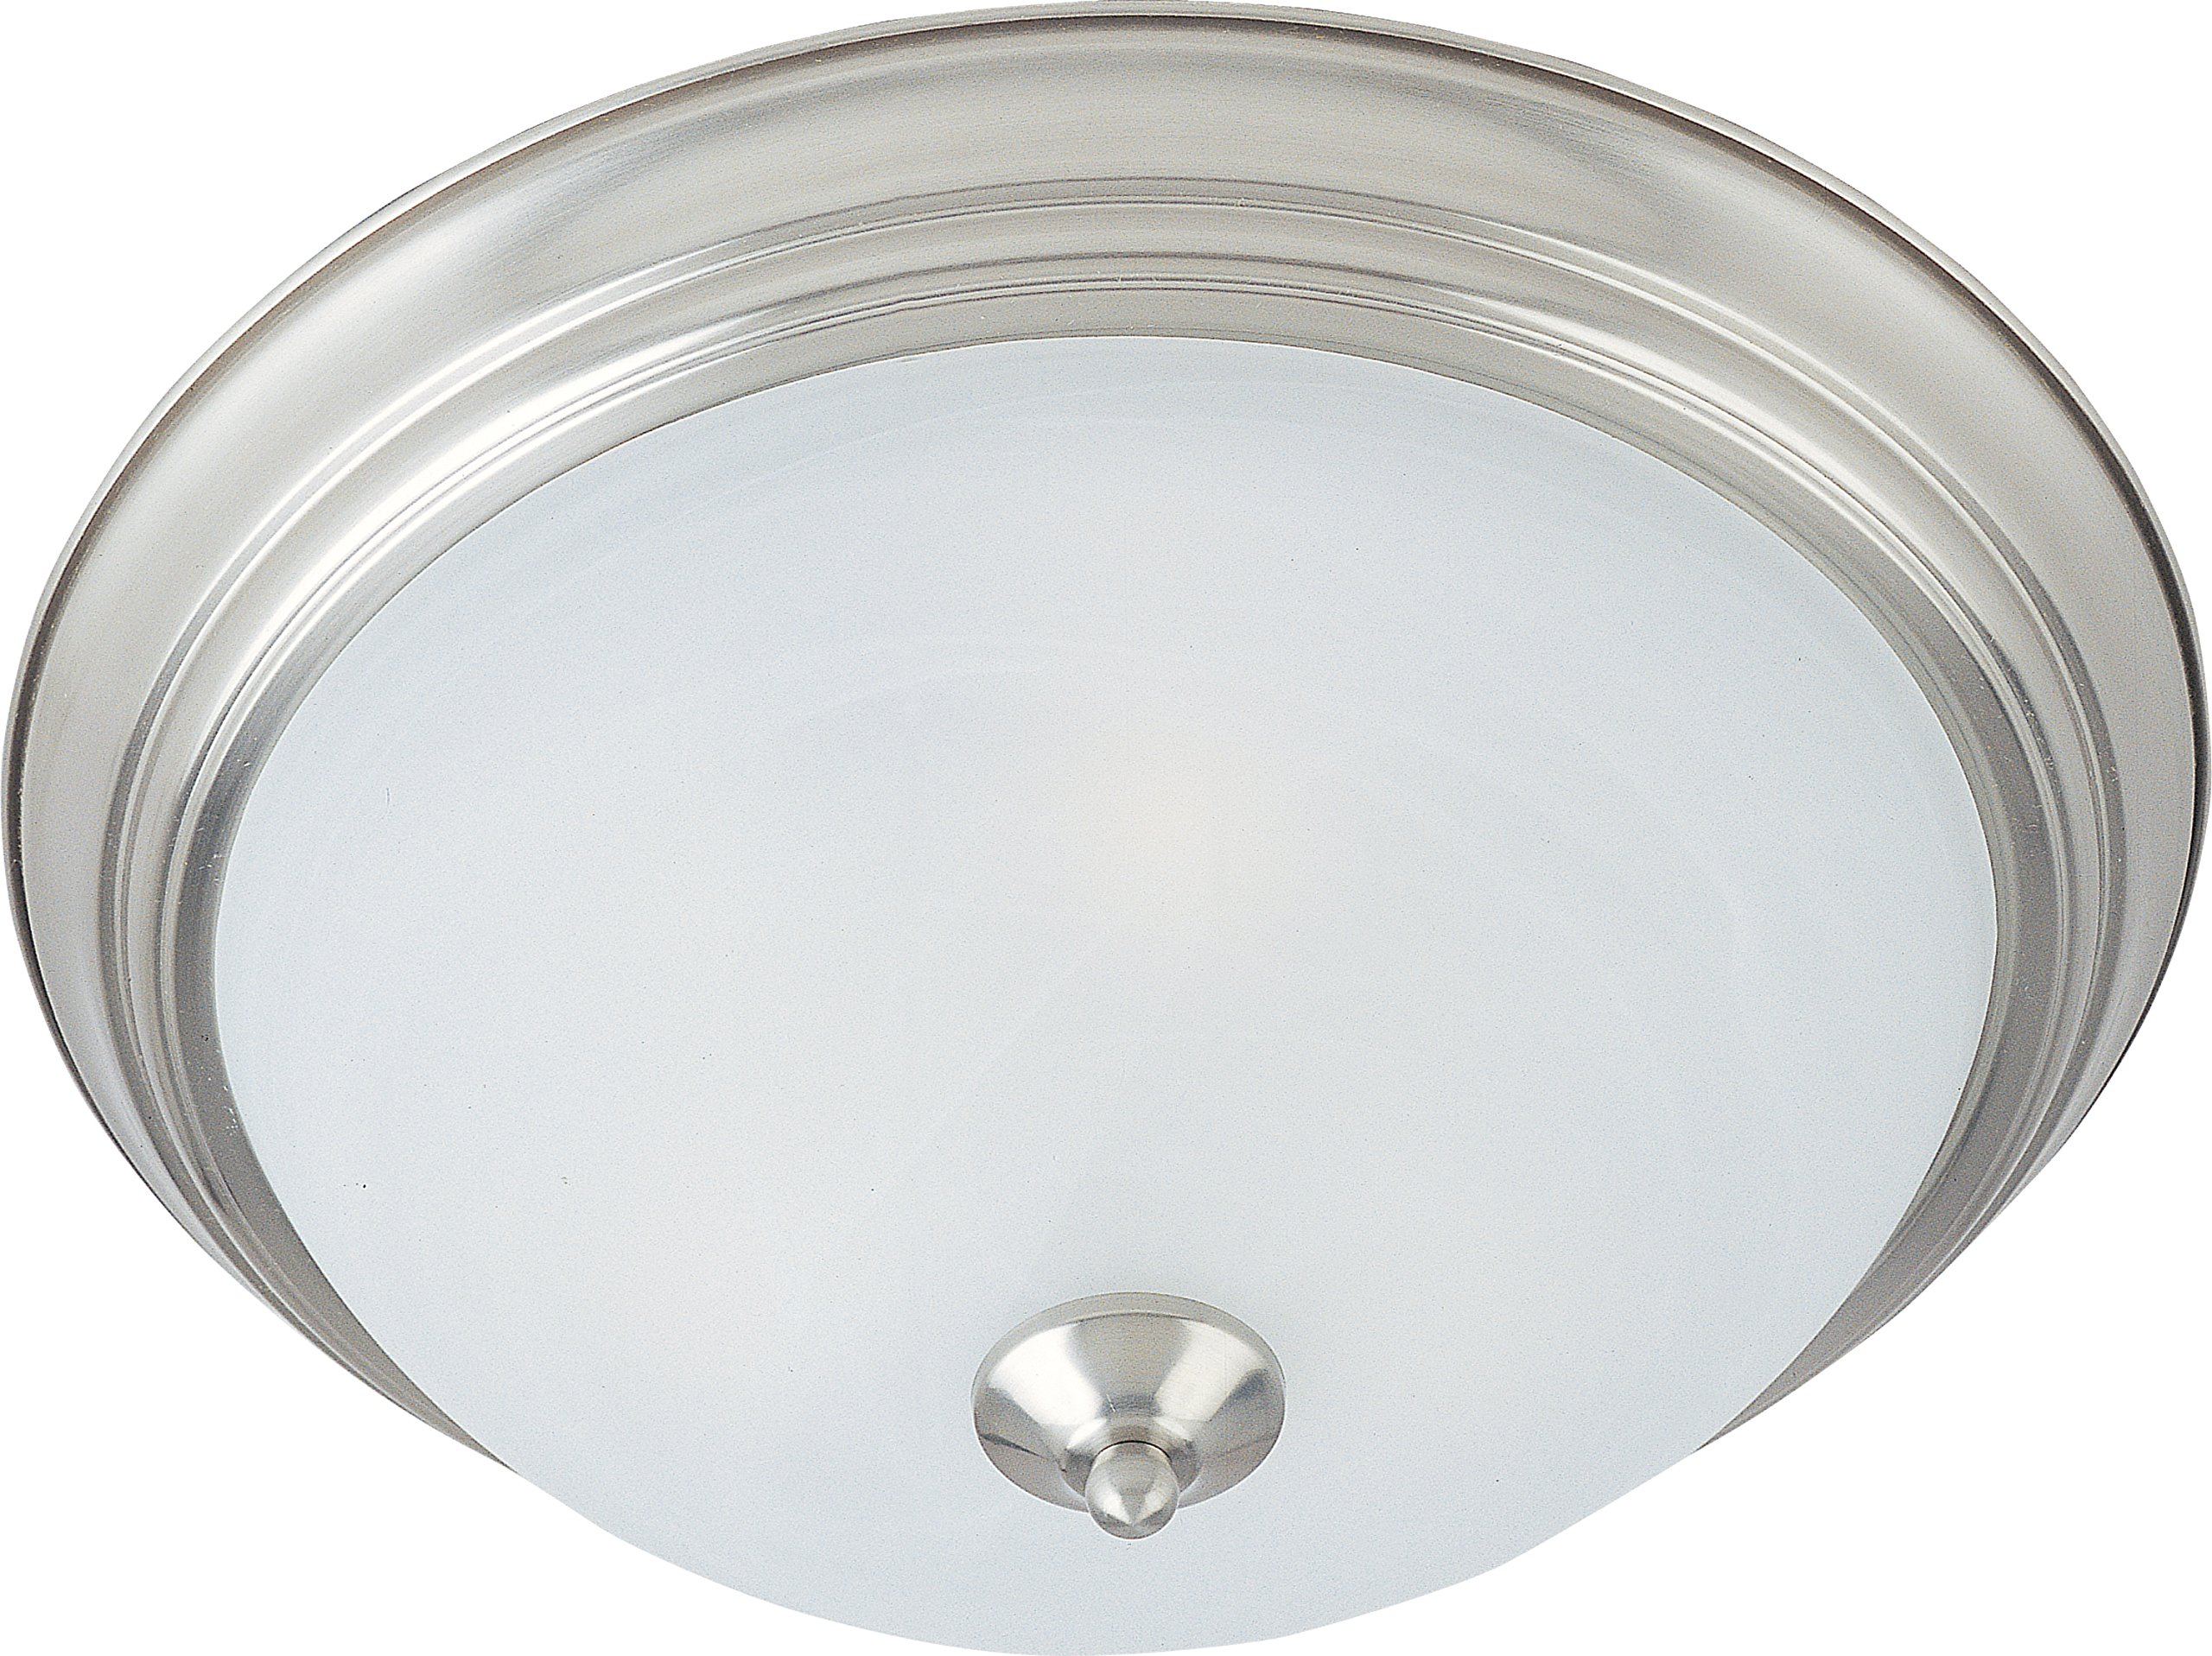 Maxim 85840MRSN Flush Mount EE 1-Light Flush Mount, Satin Nickel Finish, Marble Glass, GU24 Fluorescent Fluorescent Bulb , 60W Max., Dry Safety Rating, Standard Dimmable, Glass Shade Material, 1344 Rated Lumens